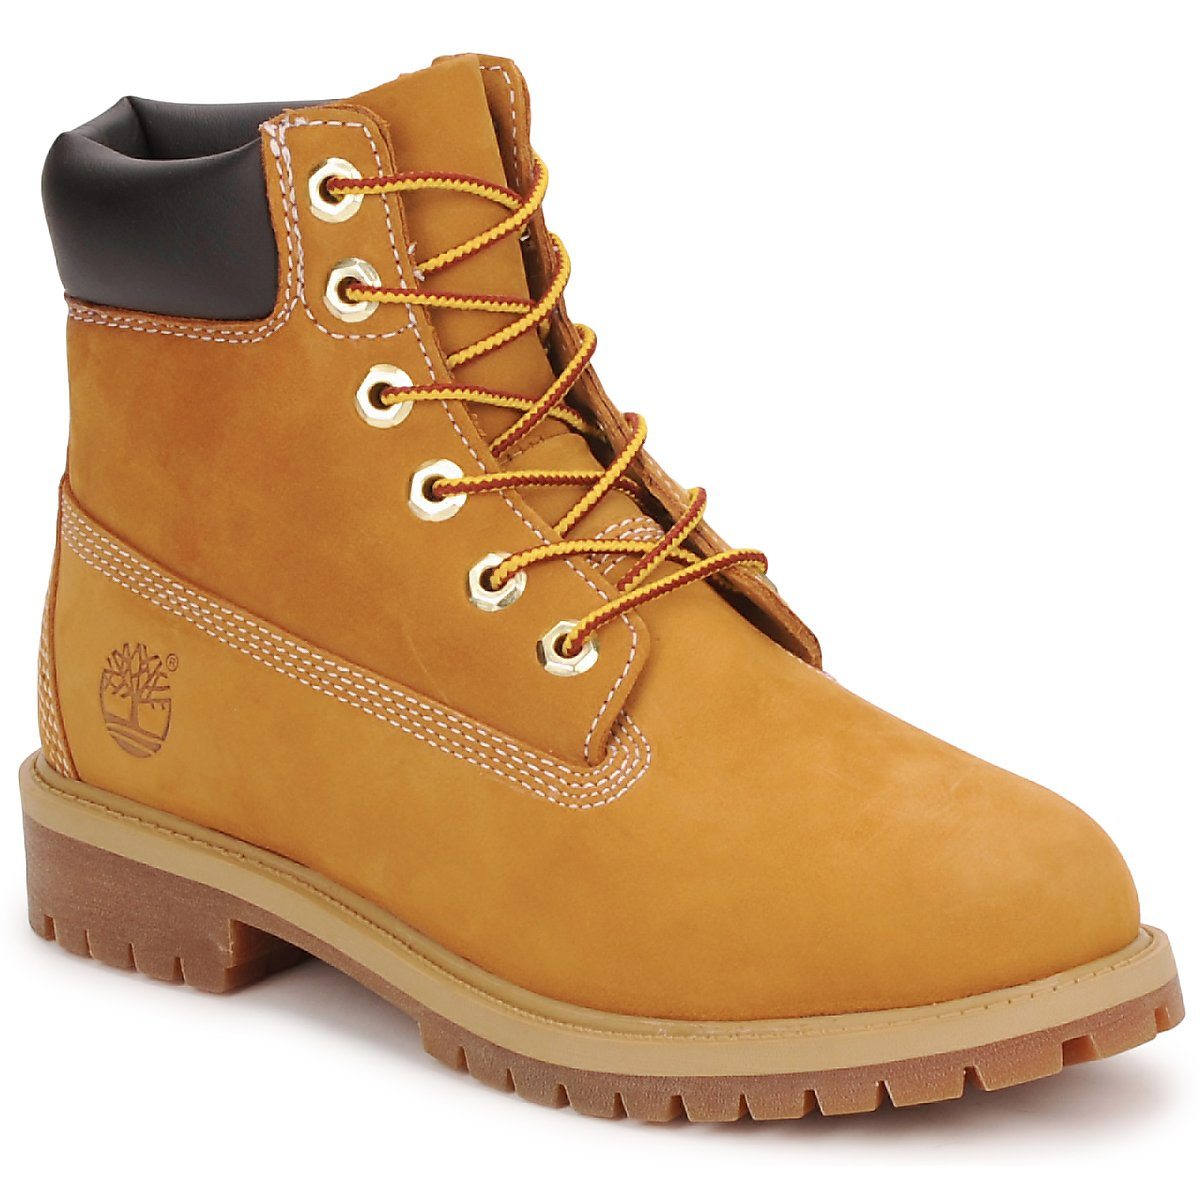 Chaussure timberland homme pas cher - Timberland euro sprint pas cher ...